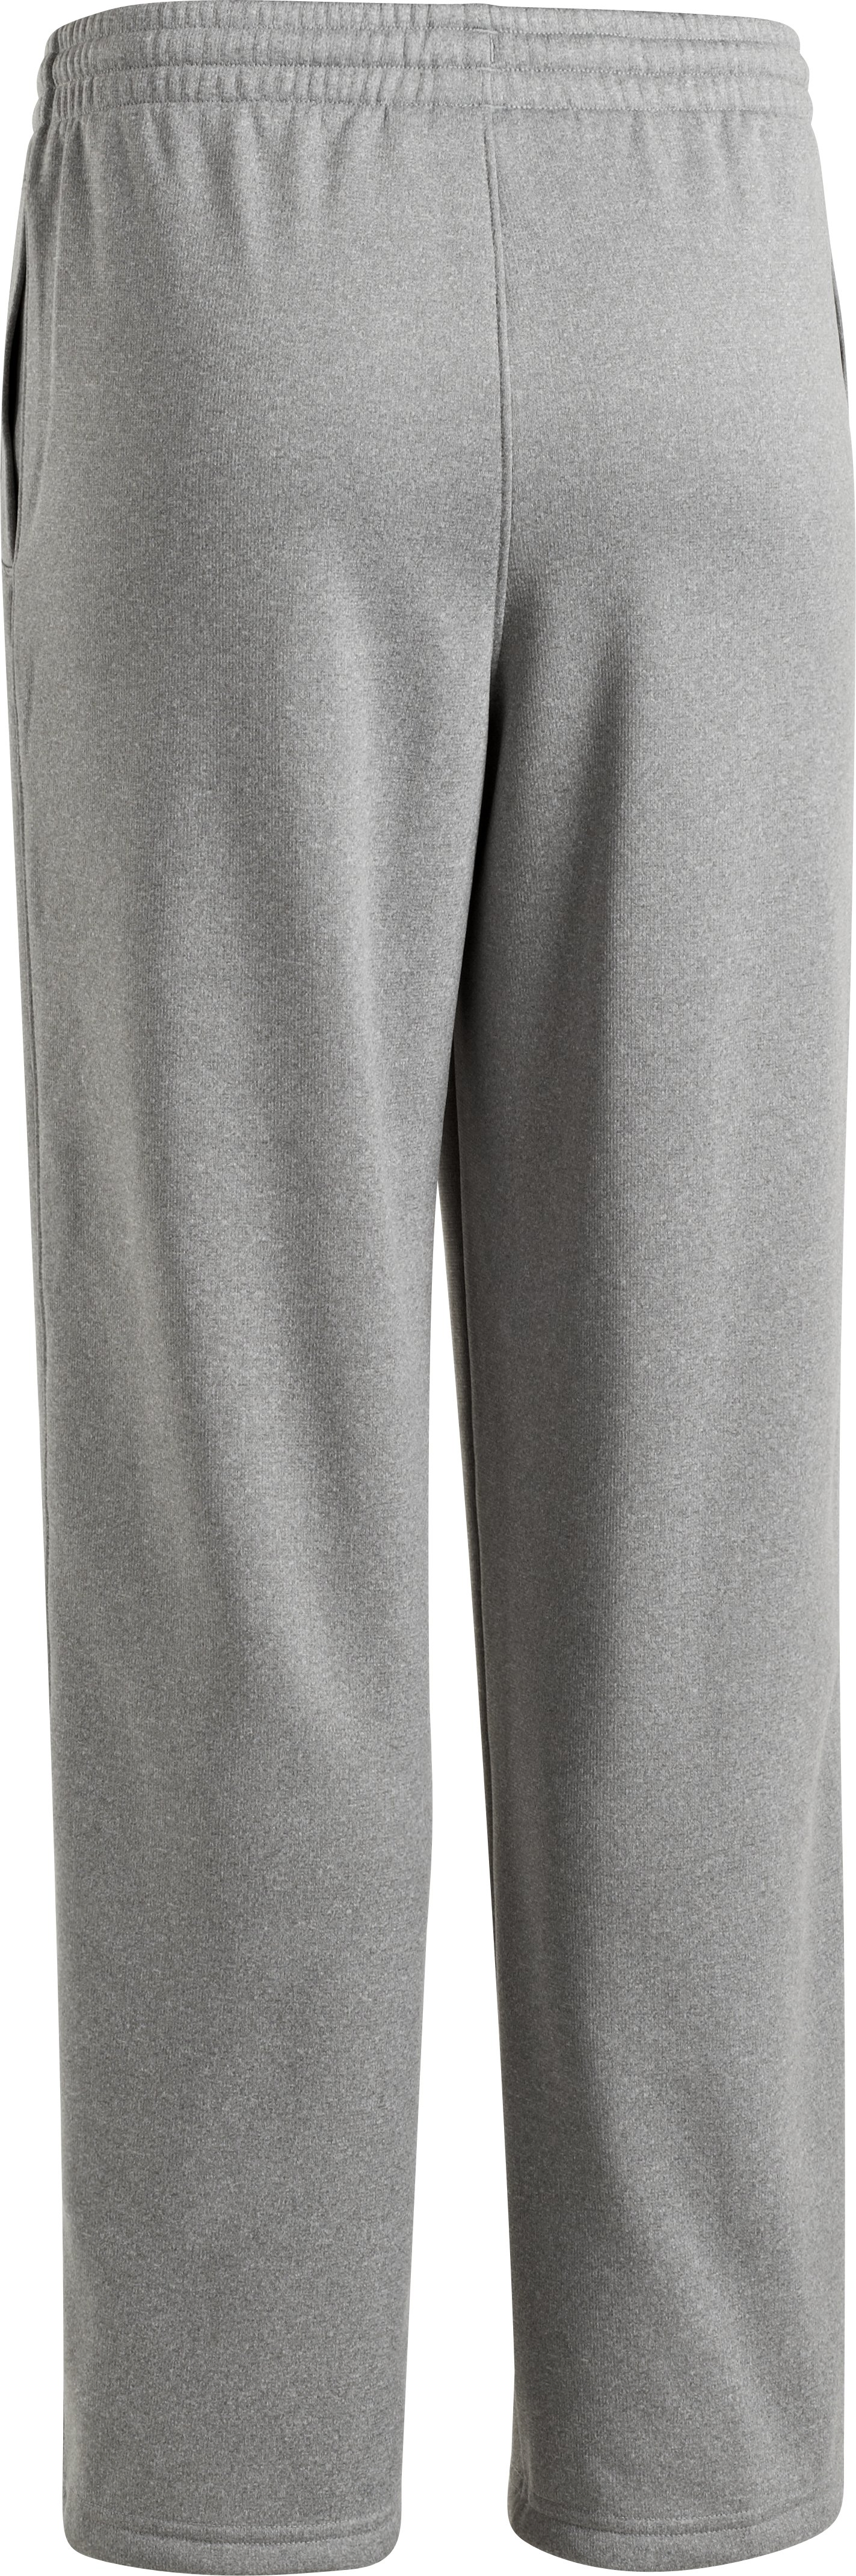 Boys' Armour® Fleece Storm Team Pants, True Gray Heather